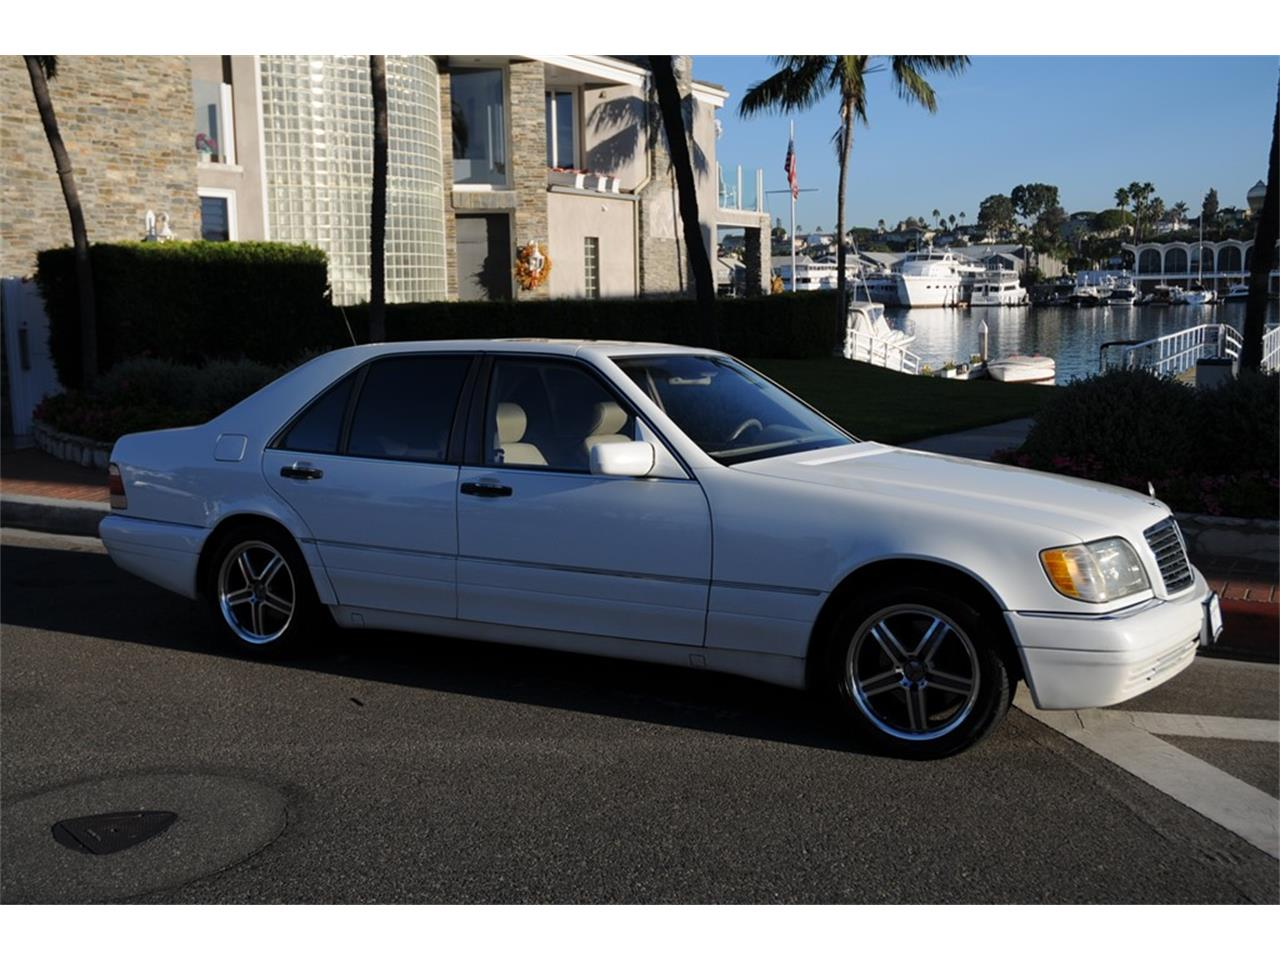 Large Picture of '99 Mercedes-Benz S320 located in California - $3,990.00 - OUD9